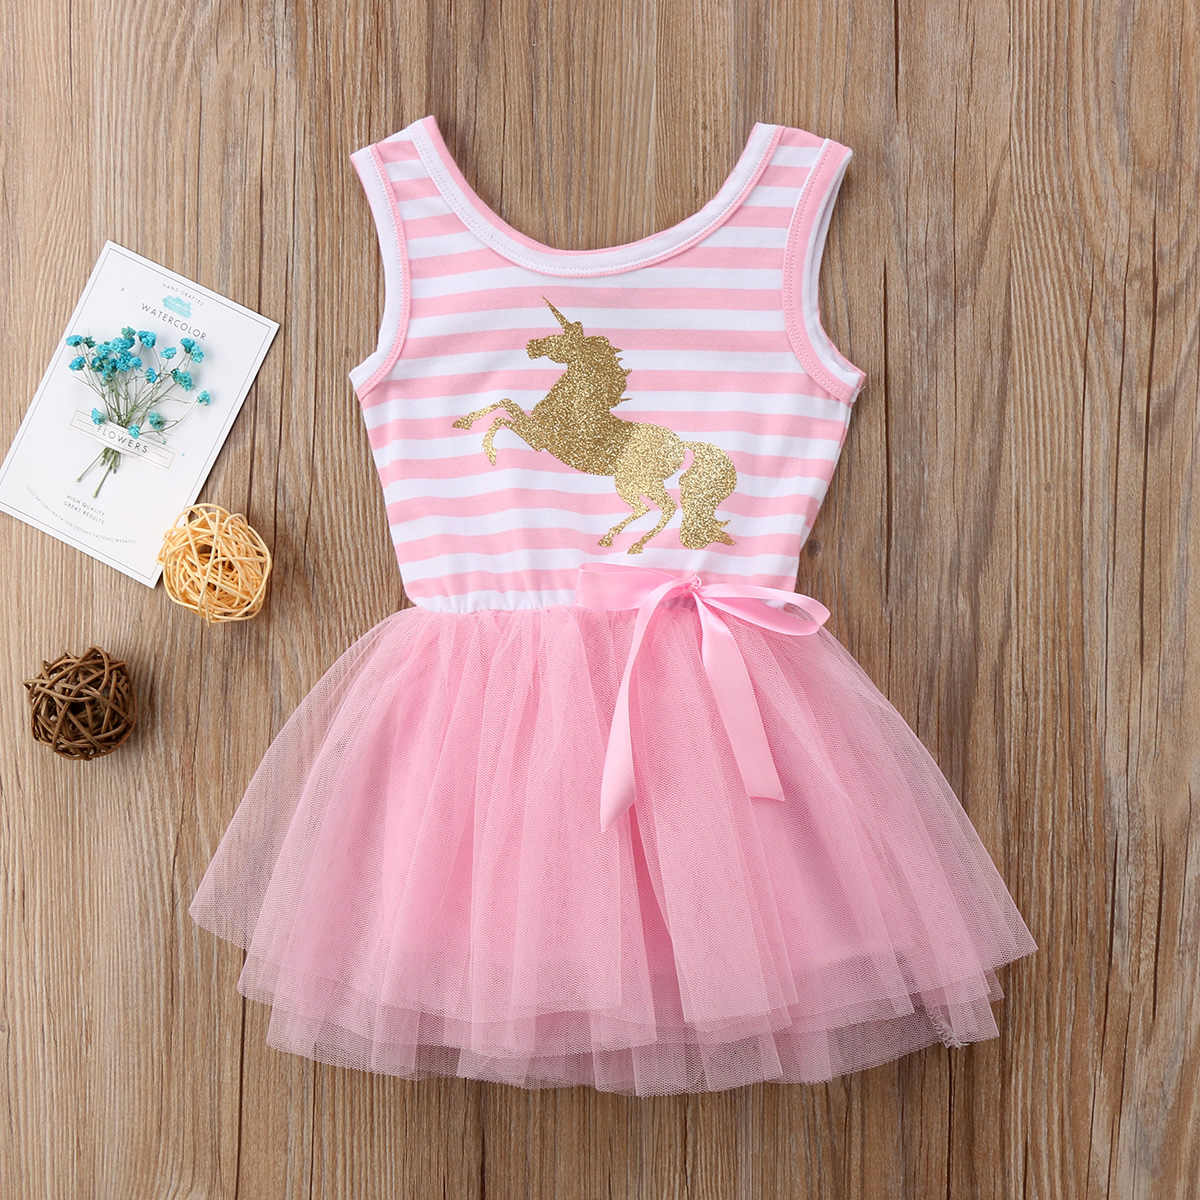 558cb9bc52cb8 Details about Canis Toddler Girls Dress Clothes Unicorn Party Tulle Tutu  Dresses Sundress Xmas